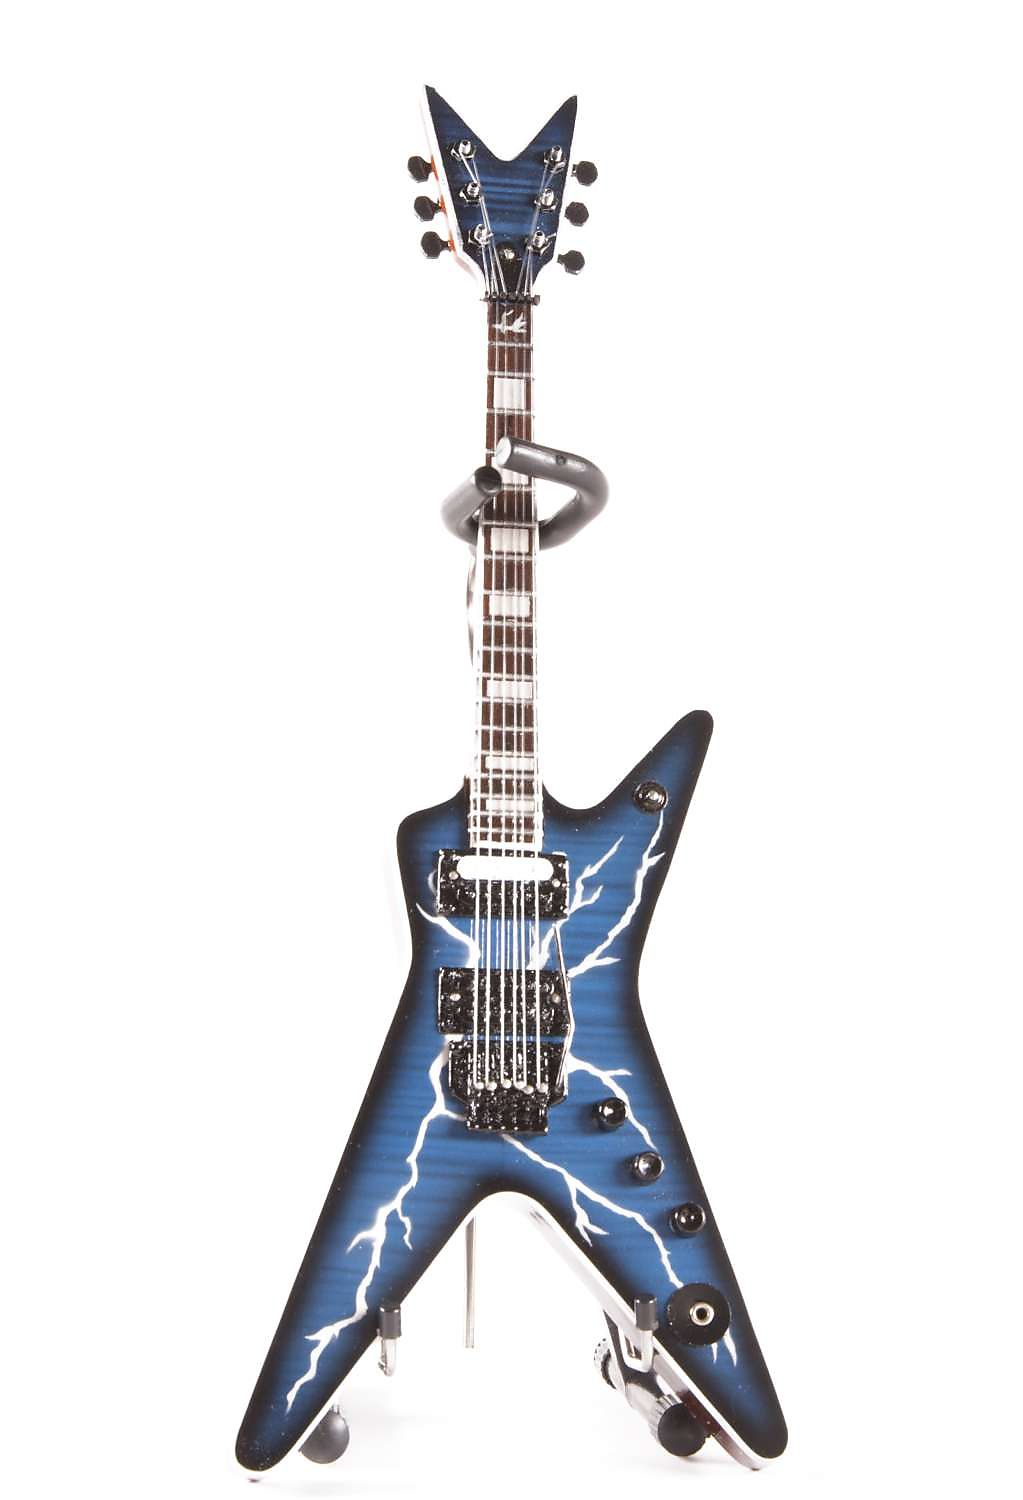 Axe Heaven DD-001 Dimebag Lightning Guitar Miniature ...Dimebag Darrell Lightning Guitar